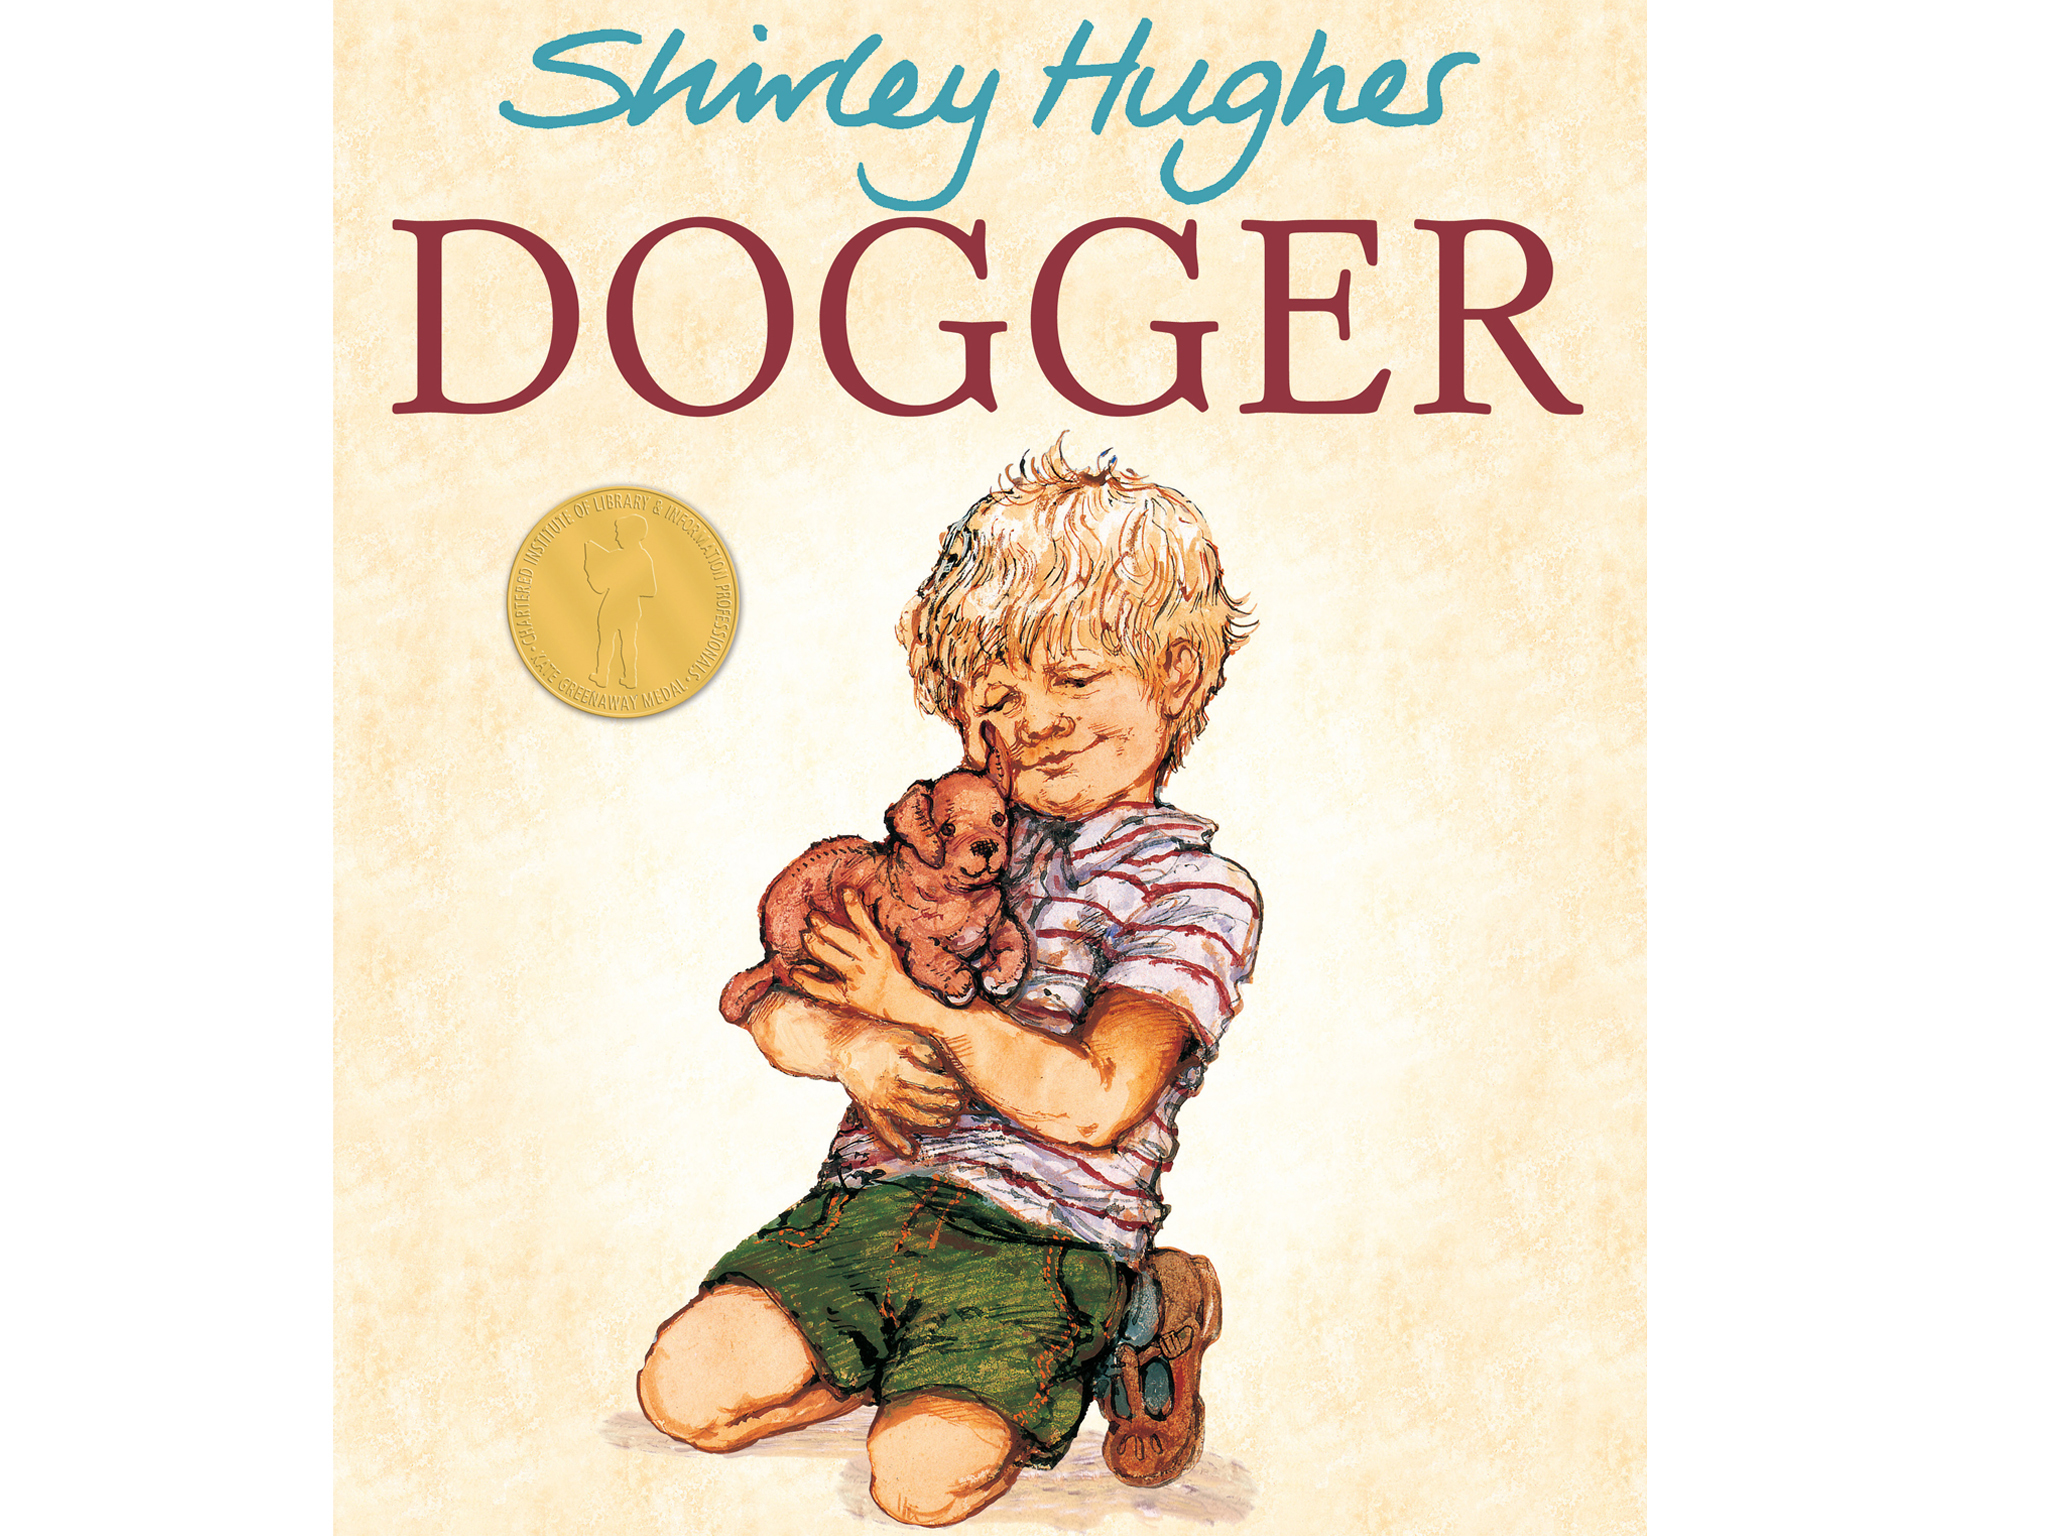 100 best children's books: Dogger